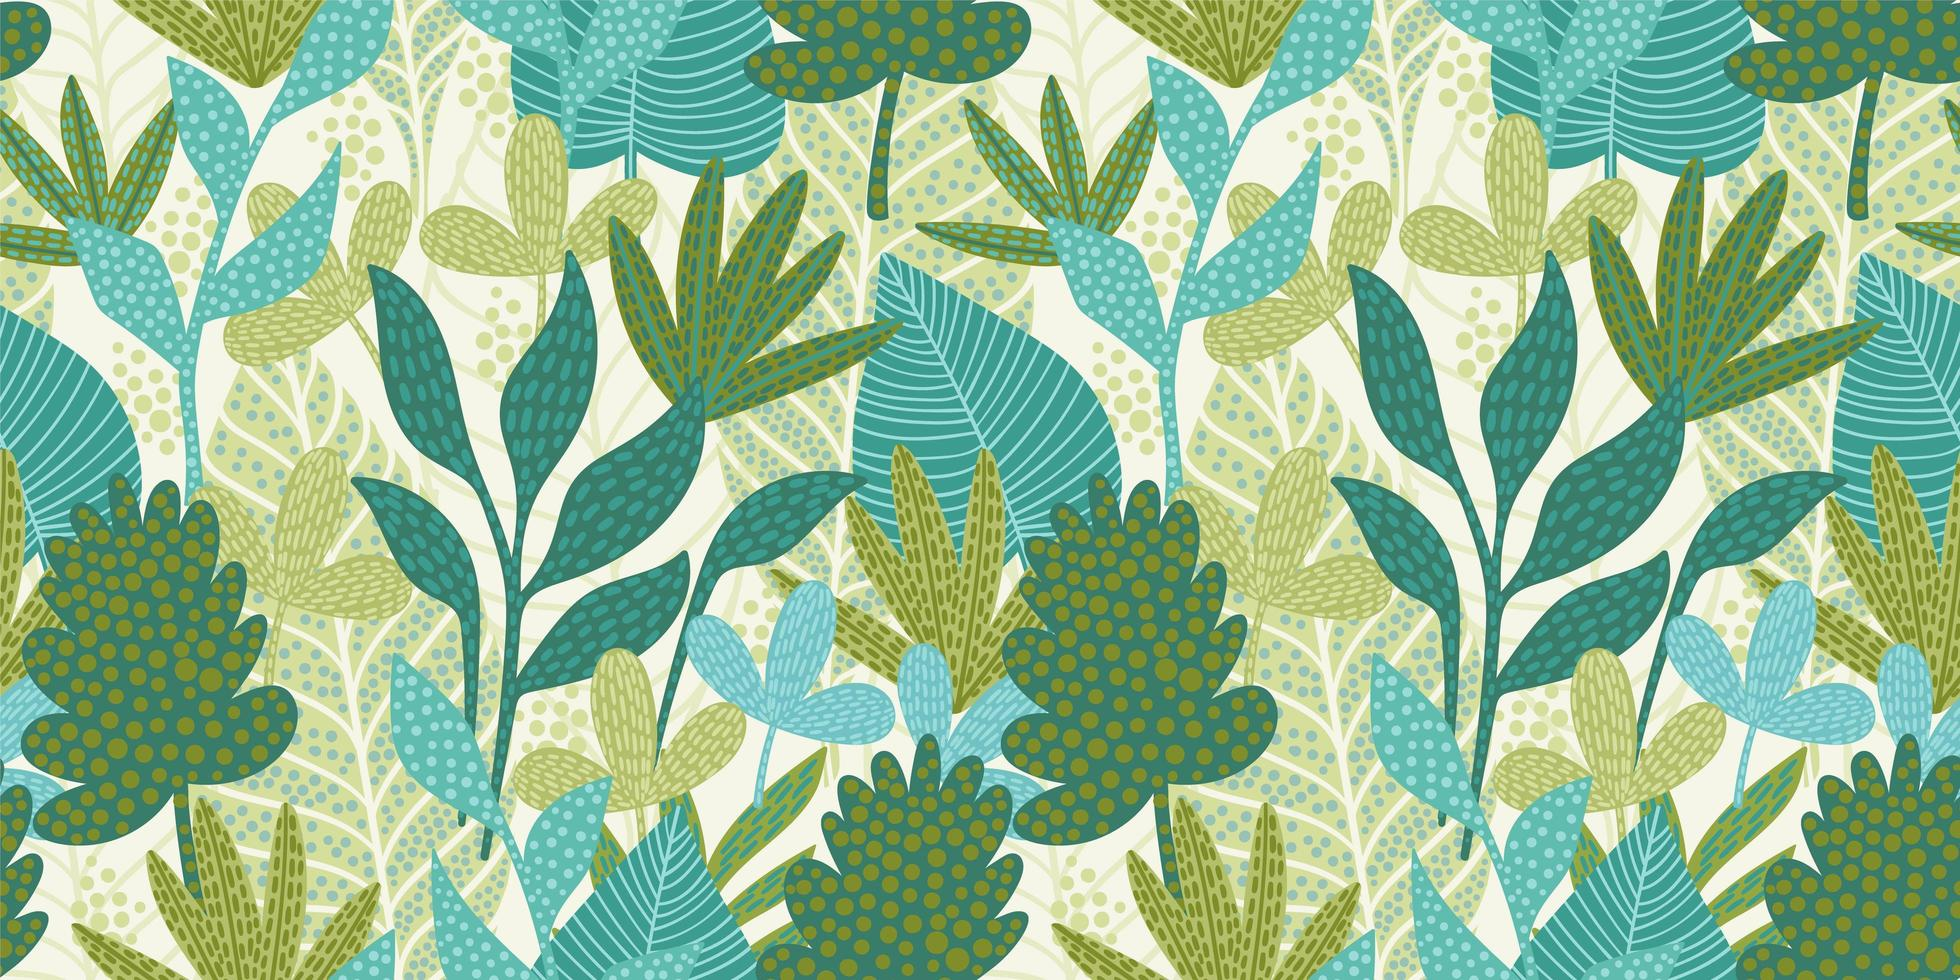 Artistic seamless pattern with abstract leaves. Modern design for paper, cover, fabric, interior decor and other. vector